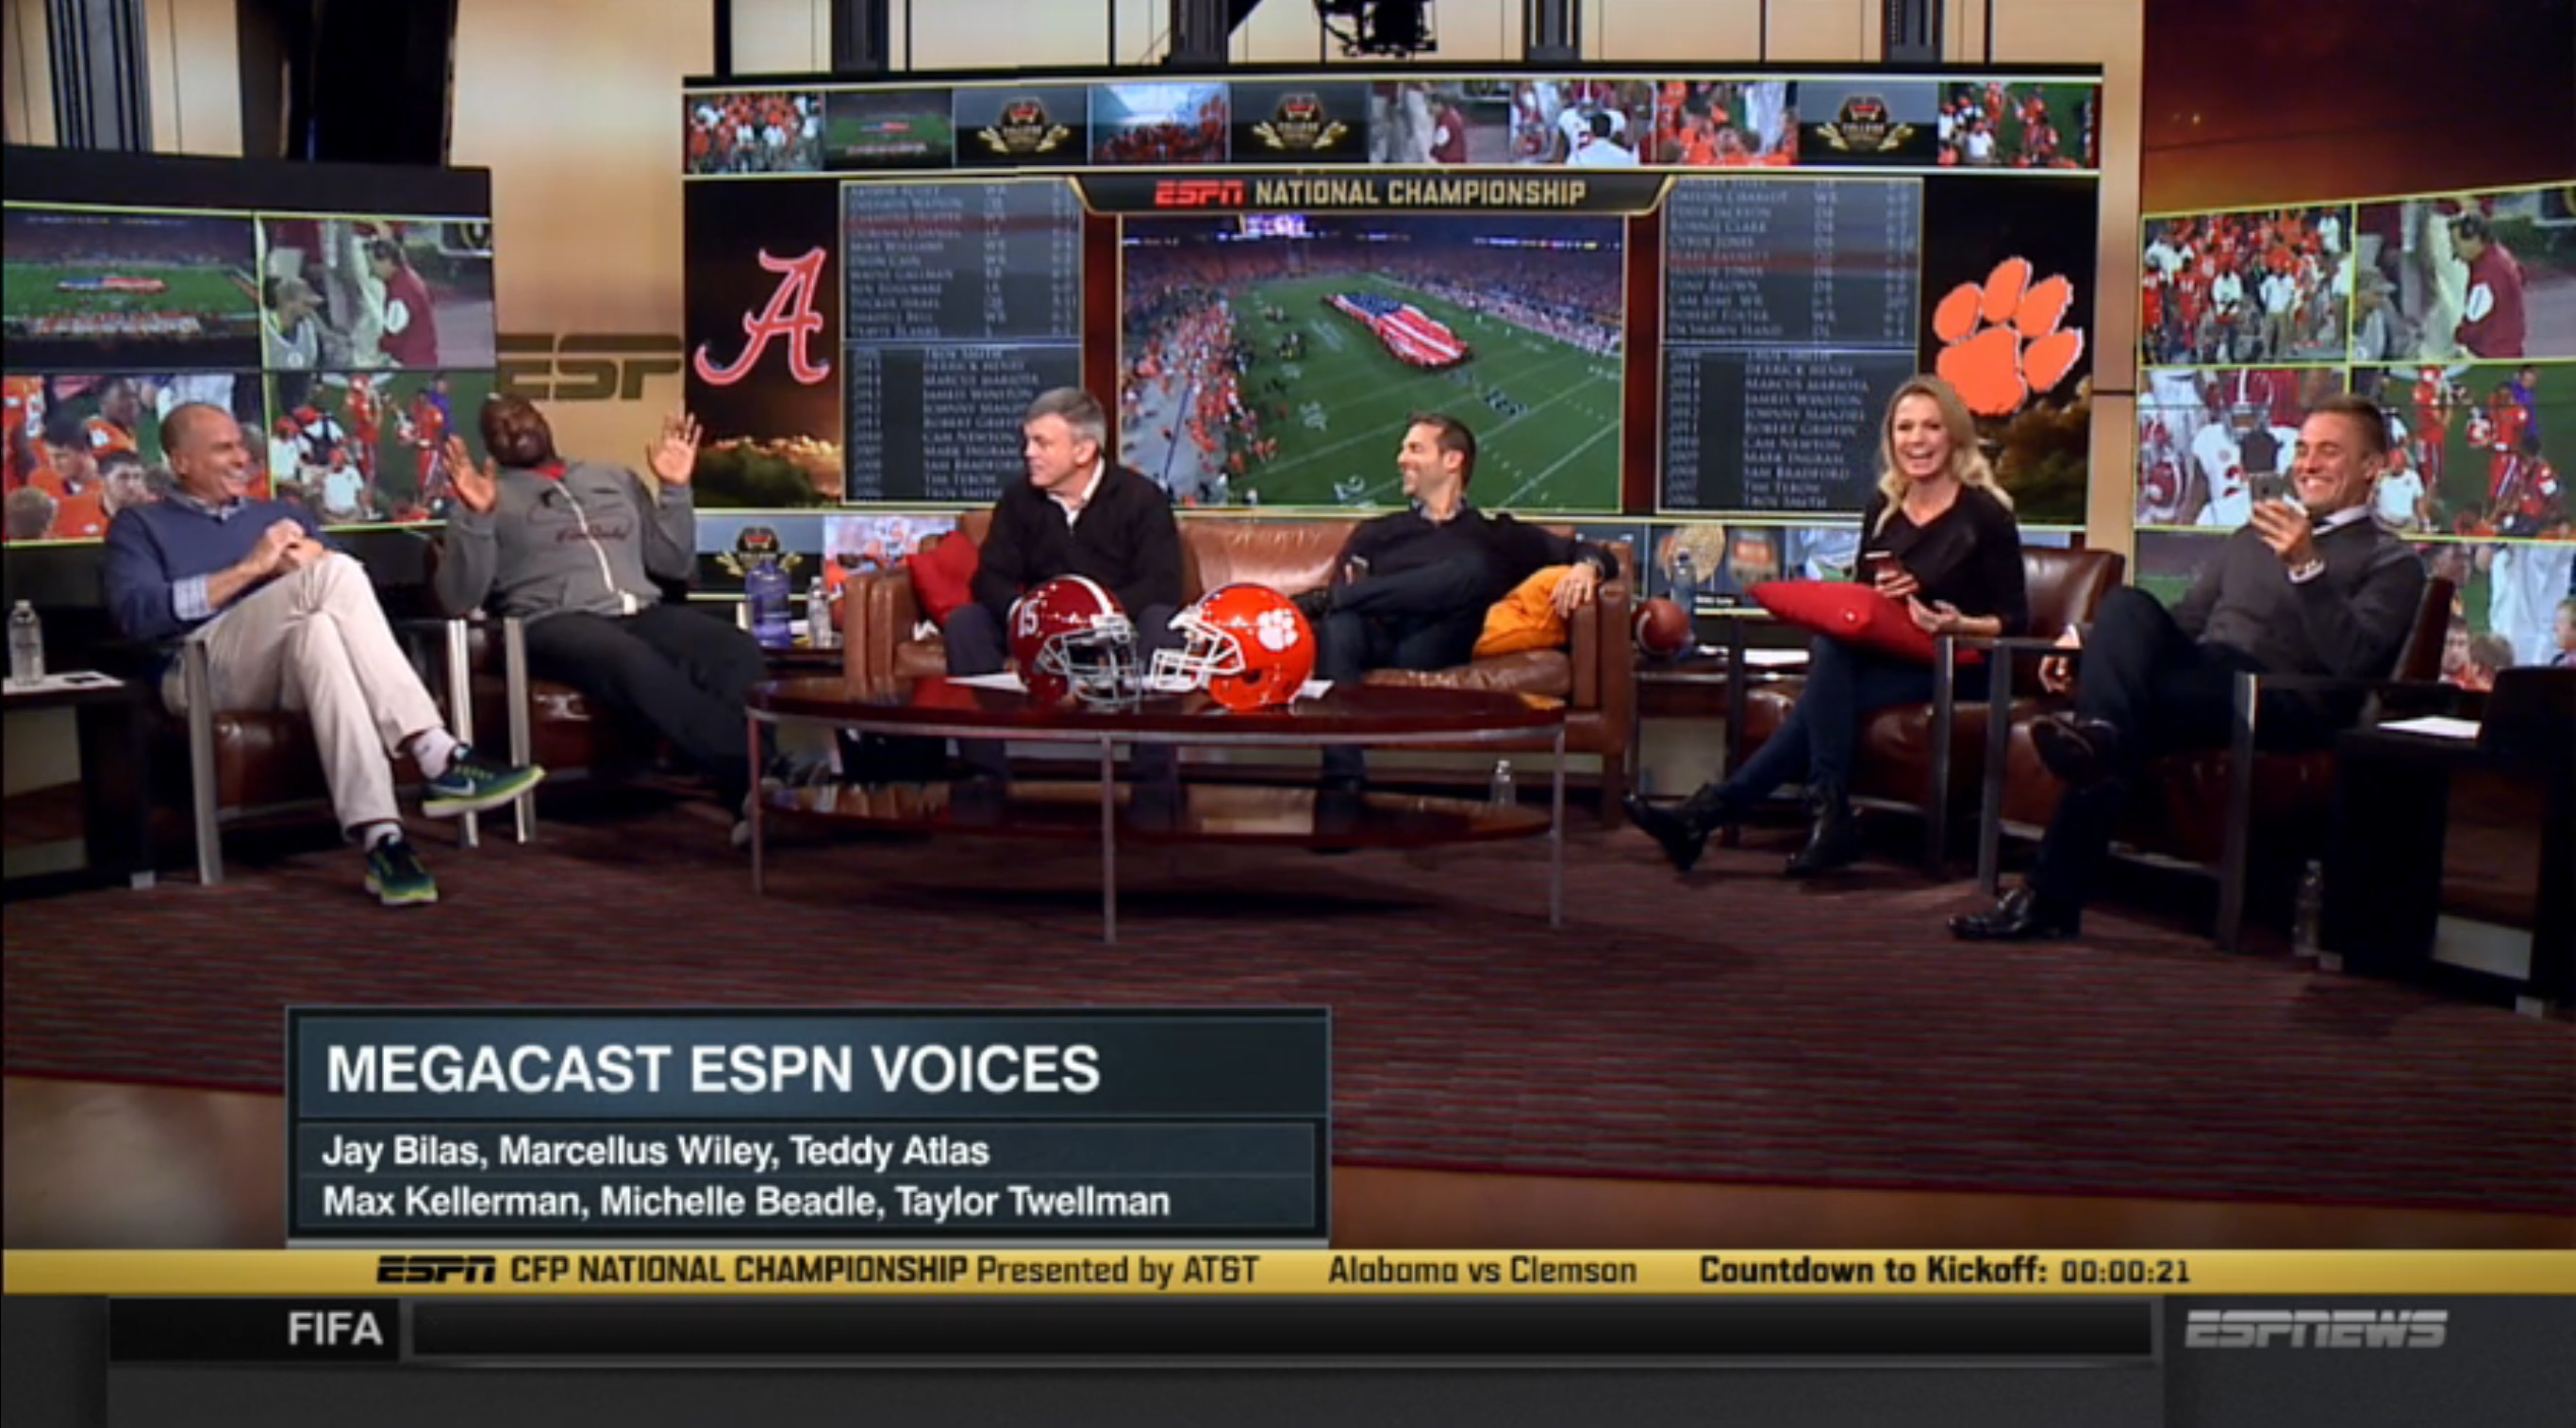 Kickoff time for national championship game - Espn Voices 01